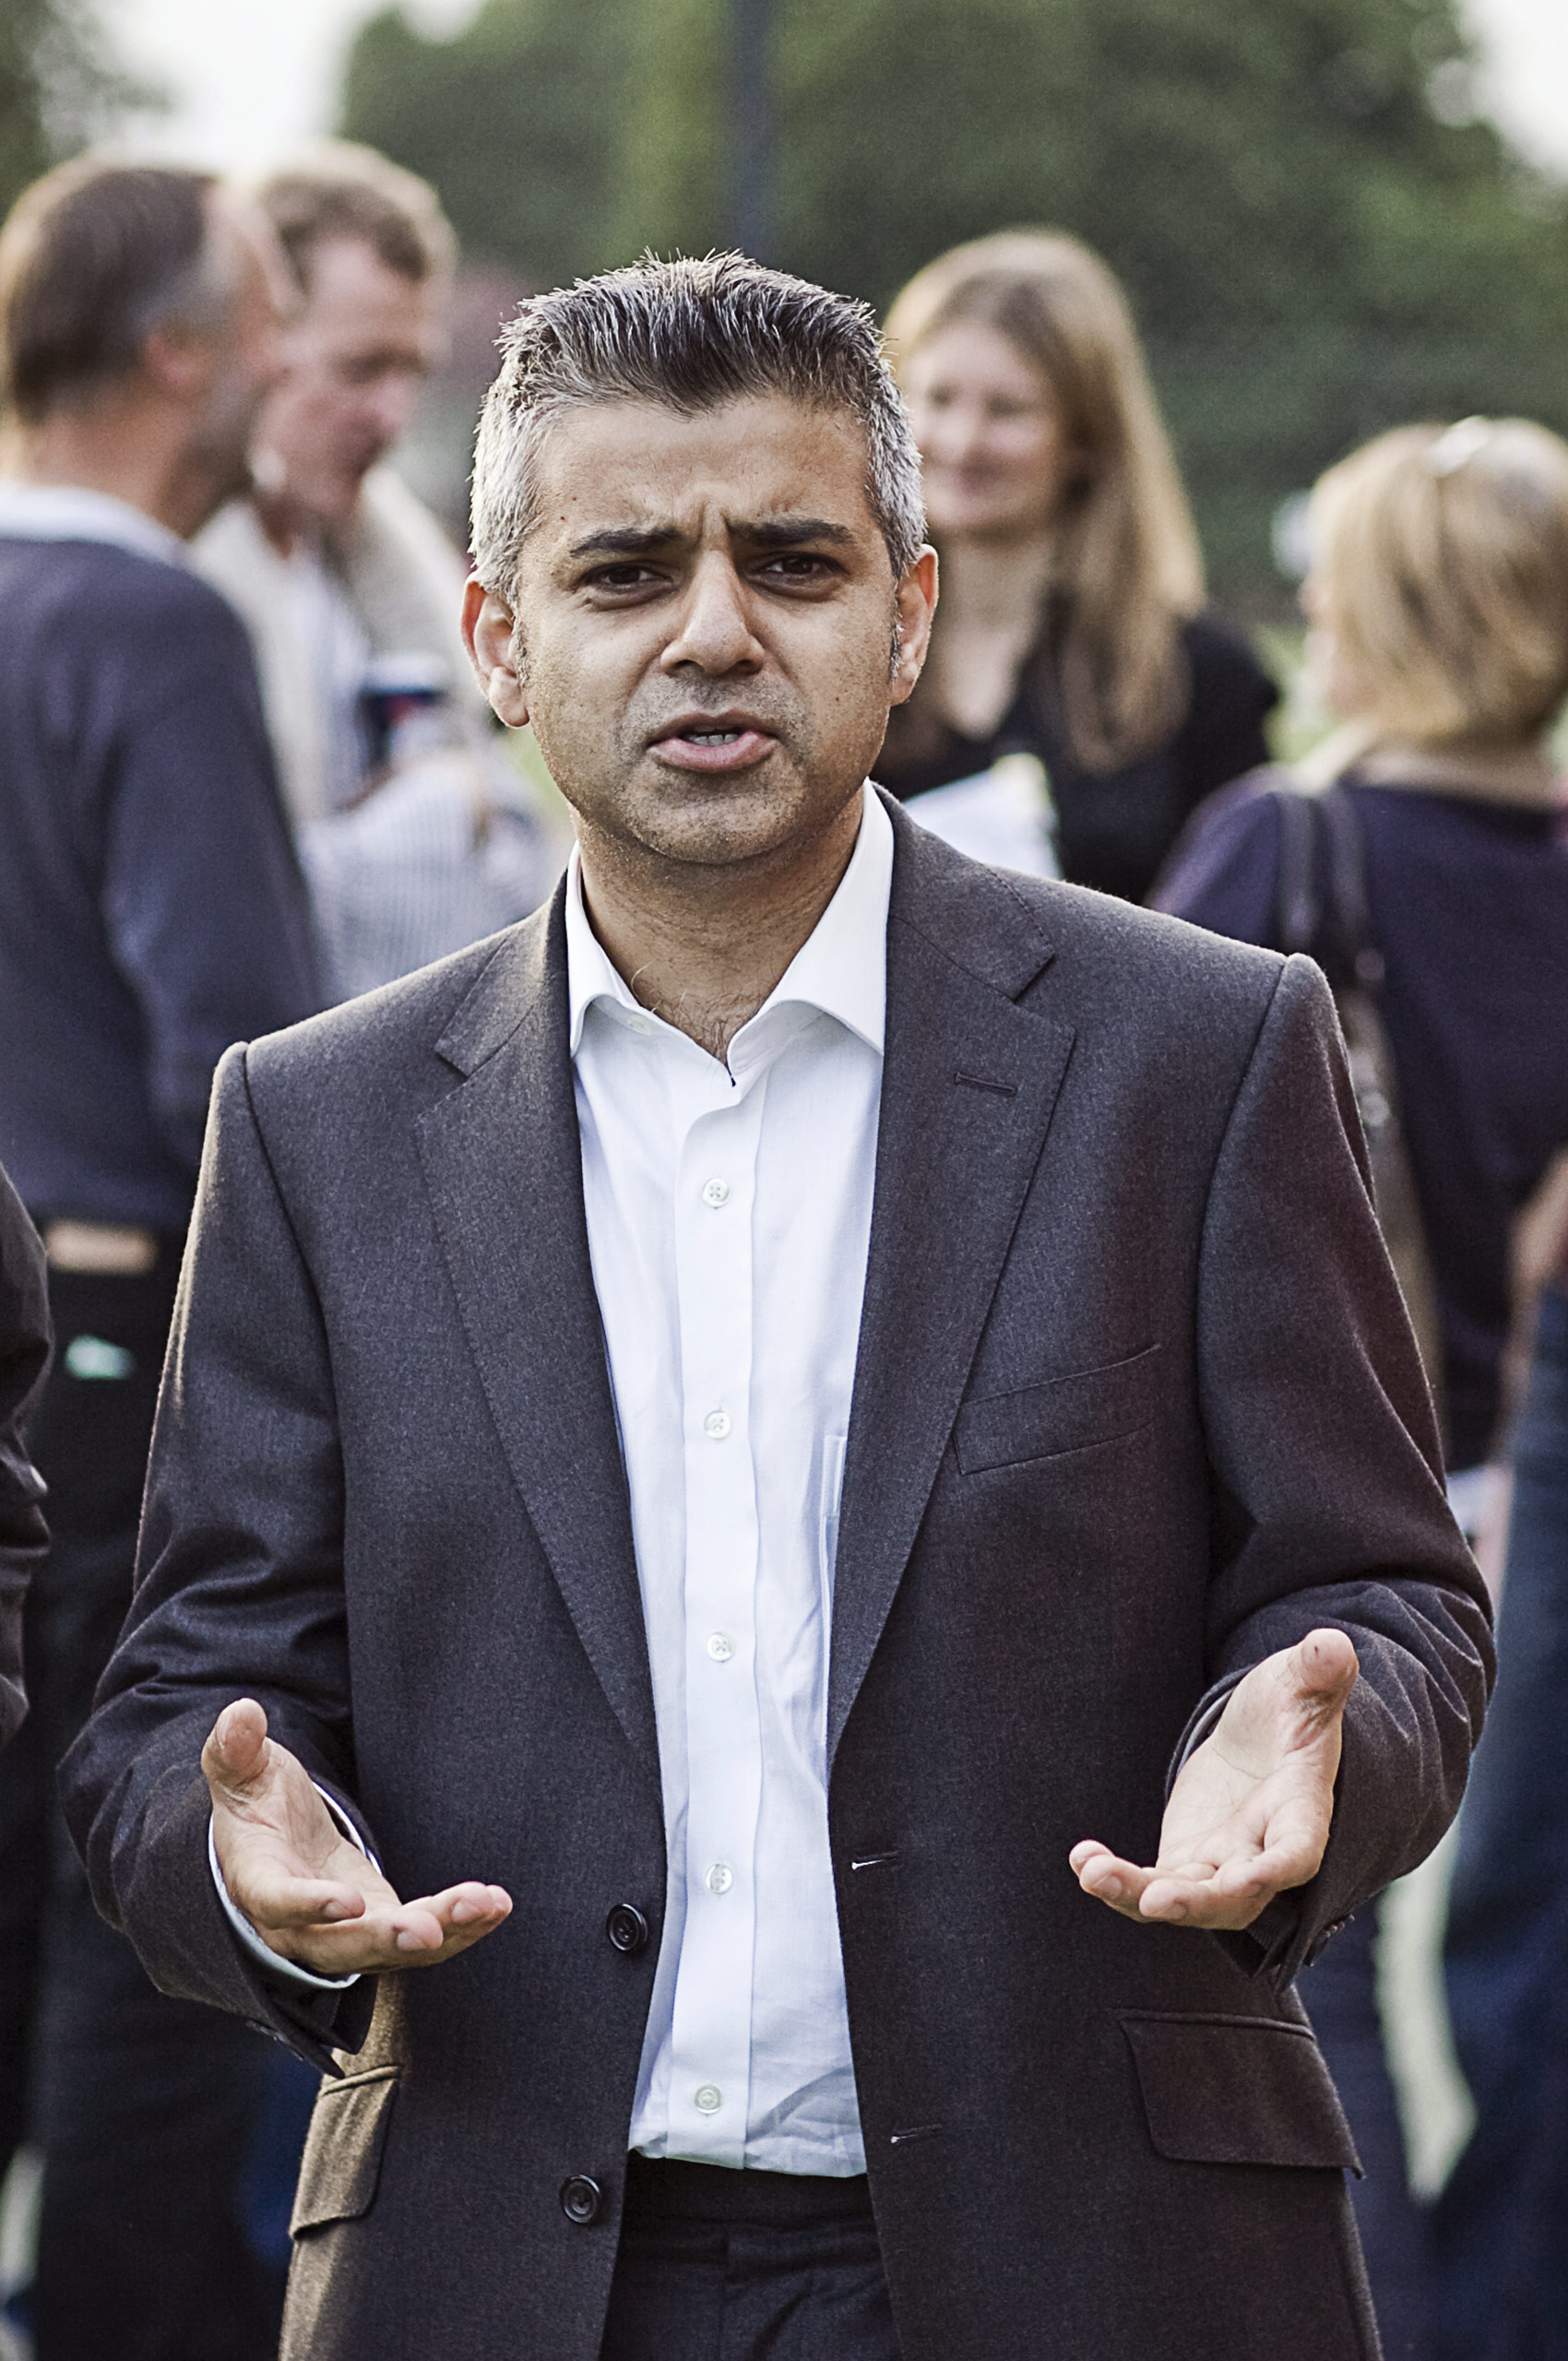 Sadiq-Khan-Mayor-of-London.jpg